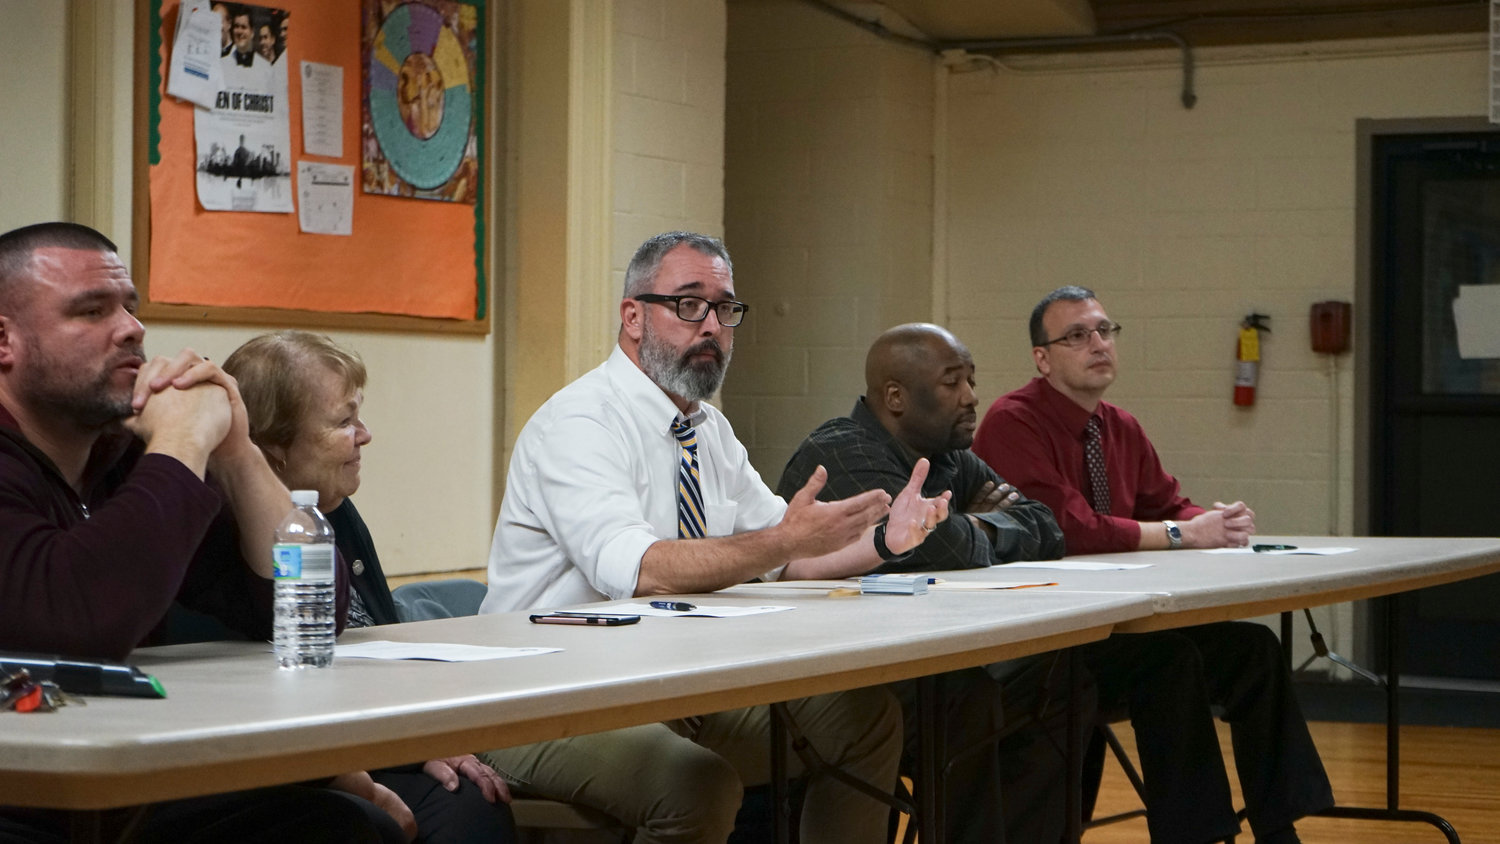 Joseph Trainor, center, executive director of the Martin De Porres Schools, addressed security concerns at a Nov. 6 meeting with Valley Stream residents.